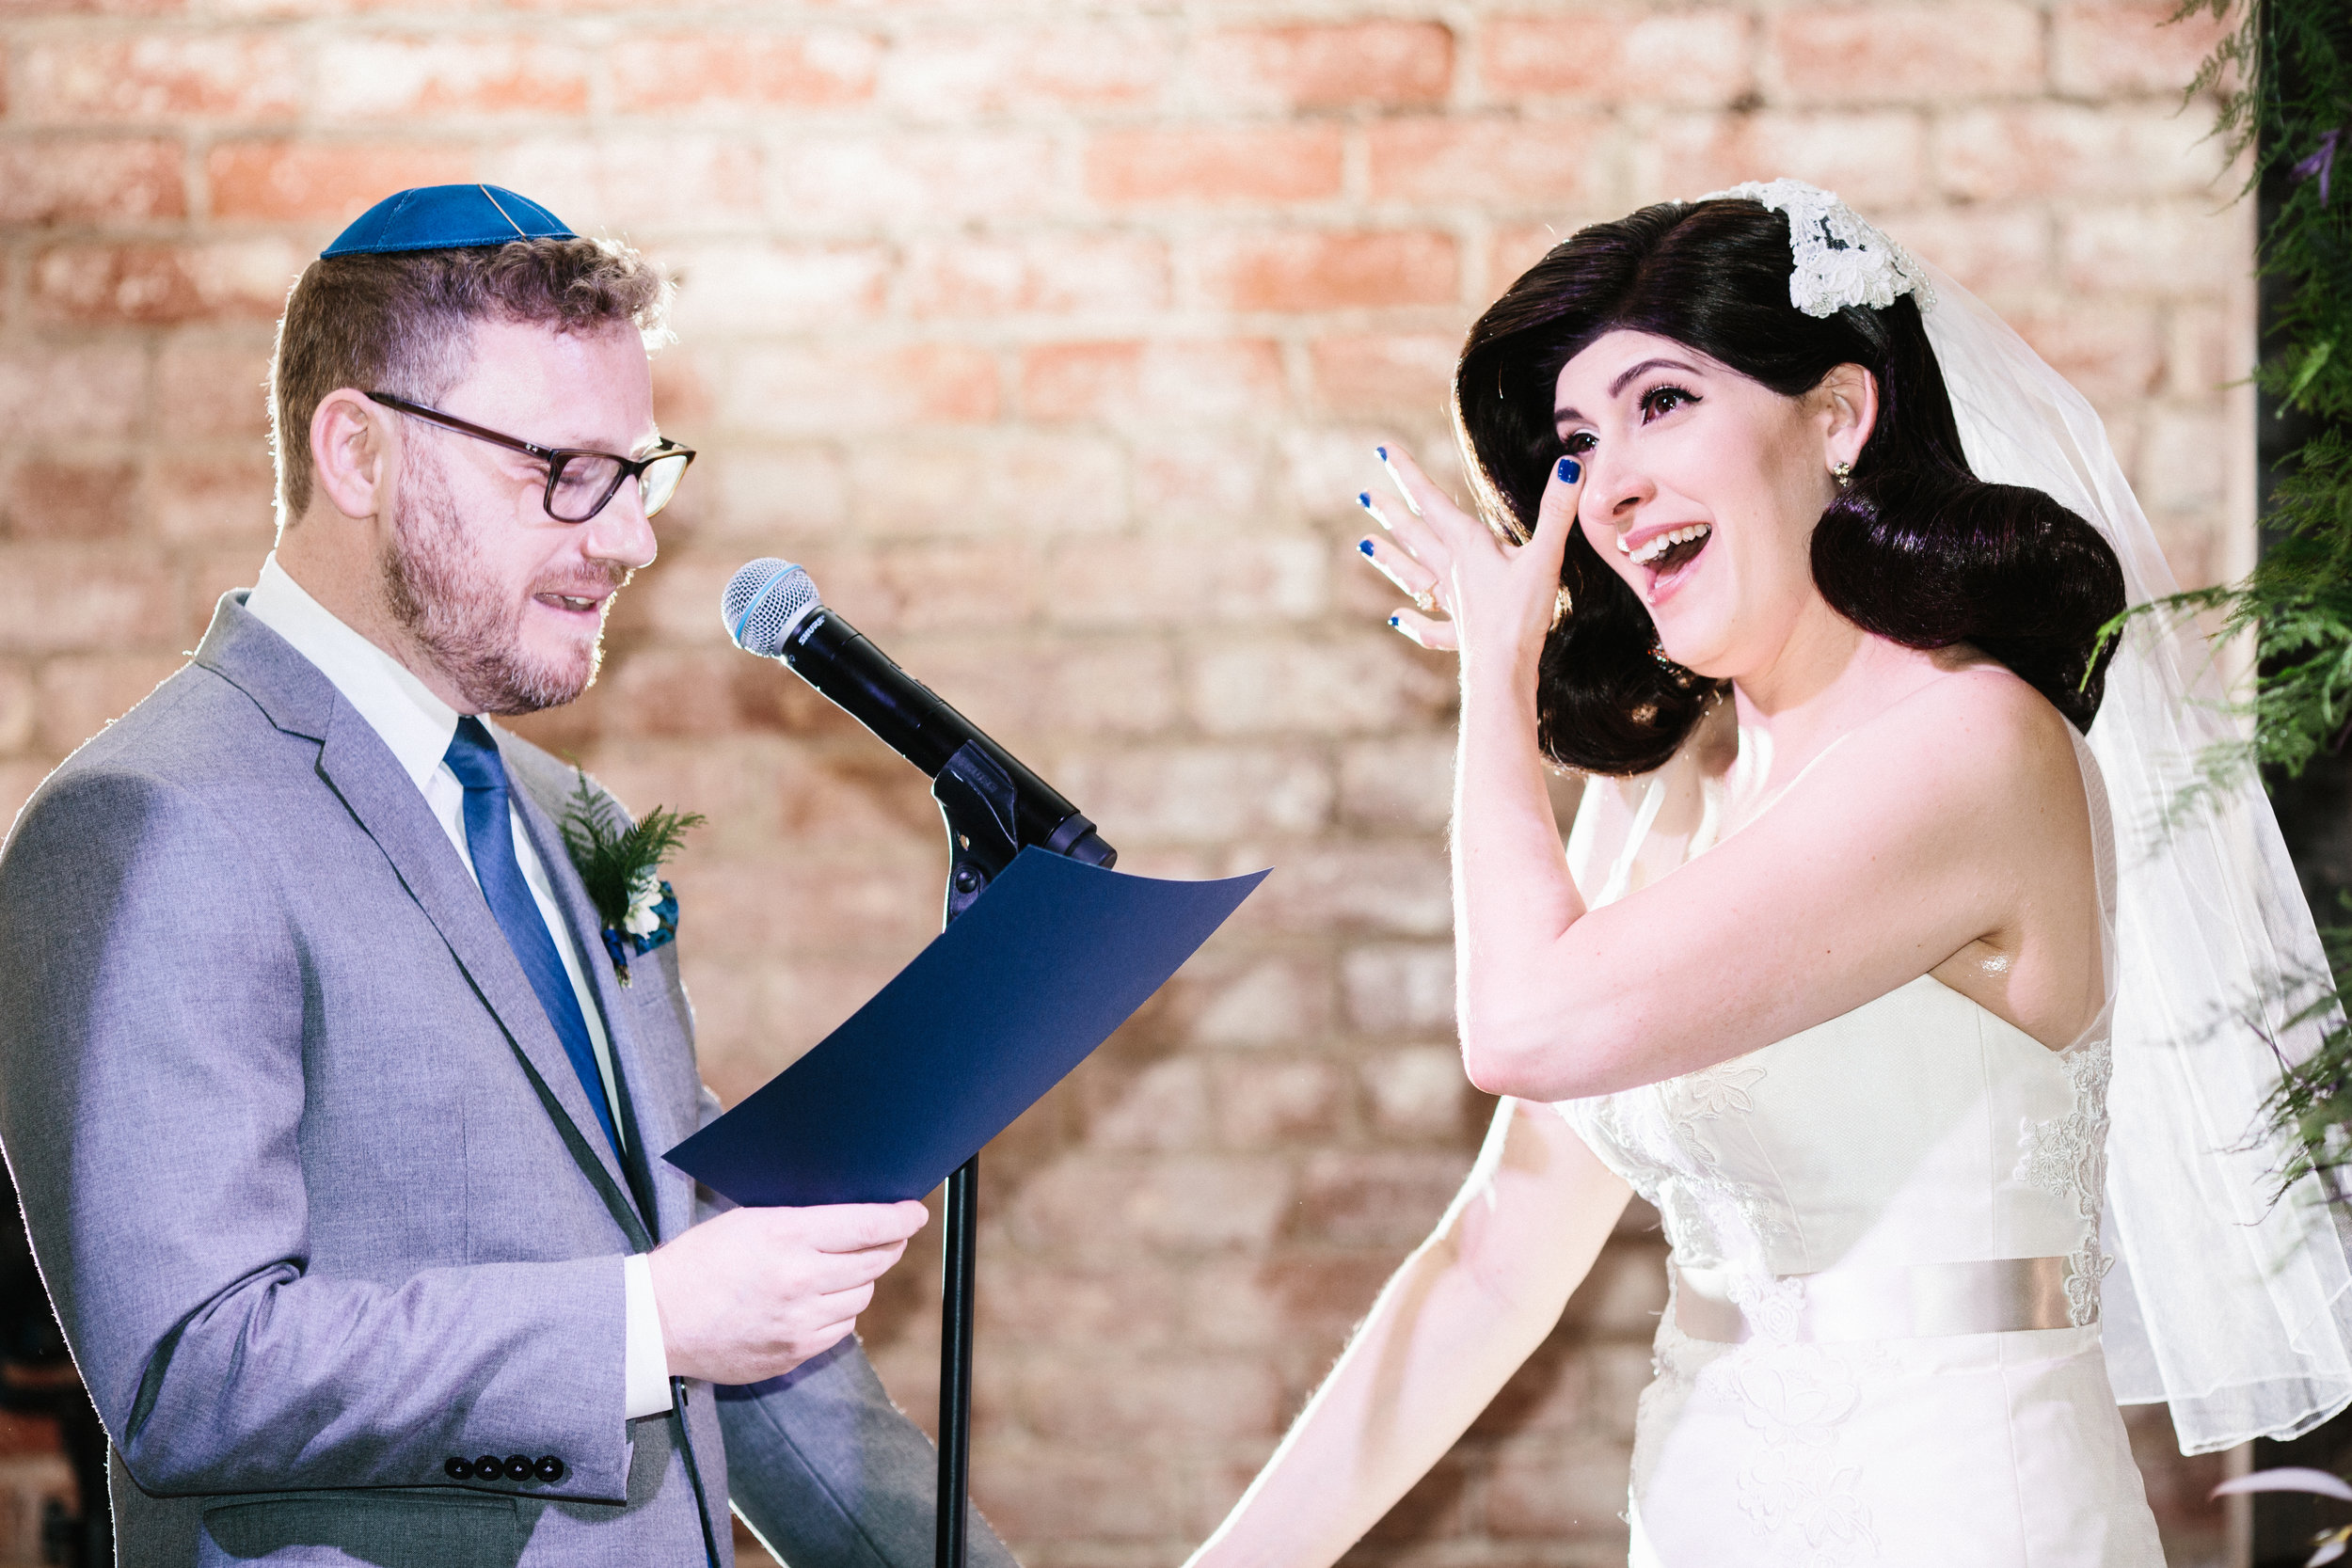 Personal Vows, Jewish Wedding Ceremony at LA River Studios, Photographer: Our Labor of Love